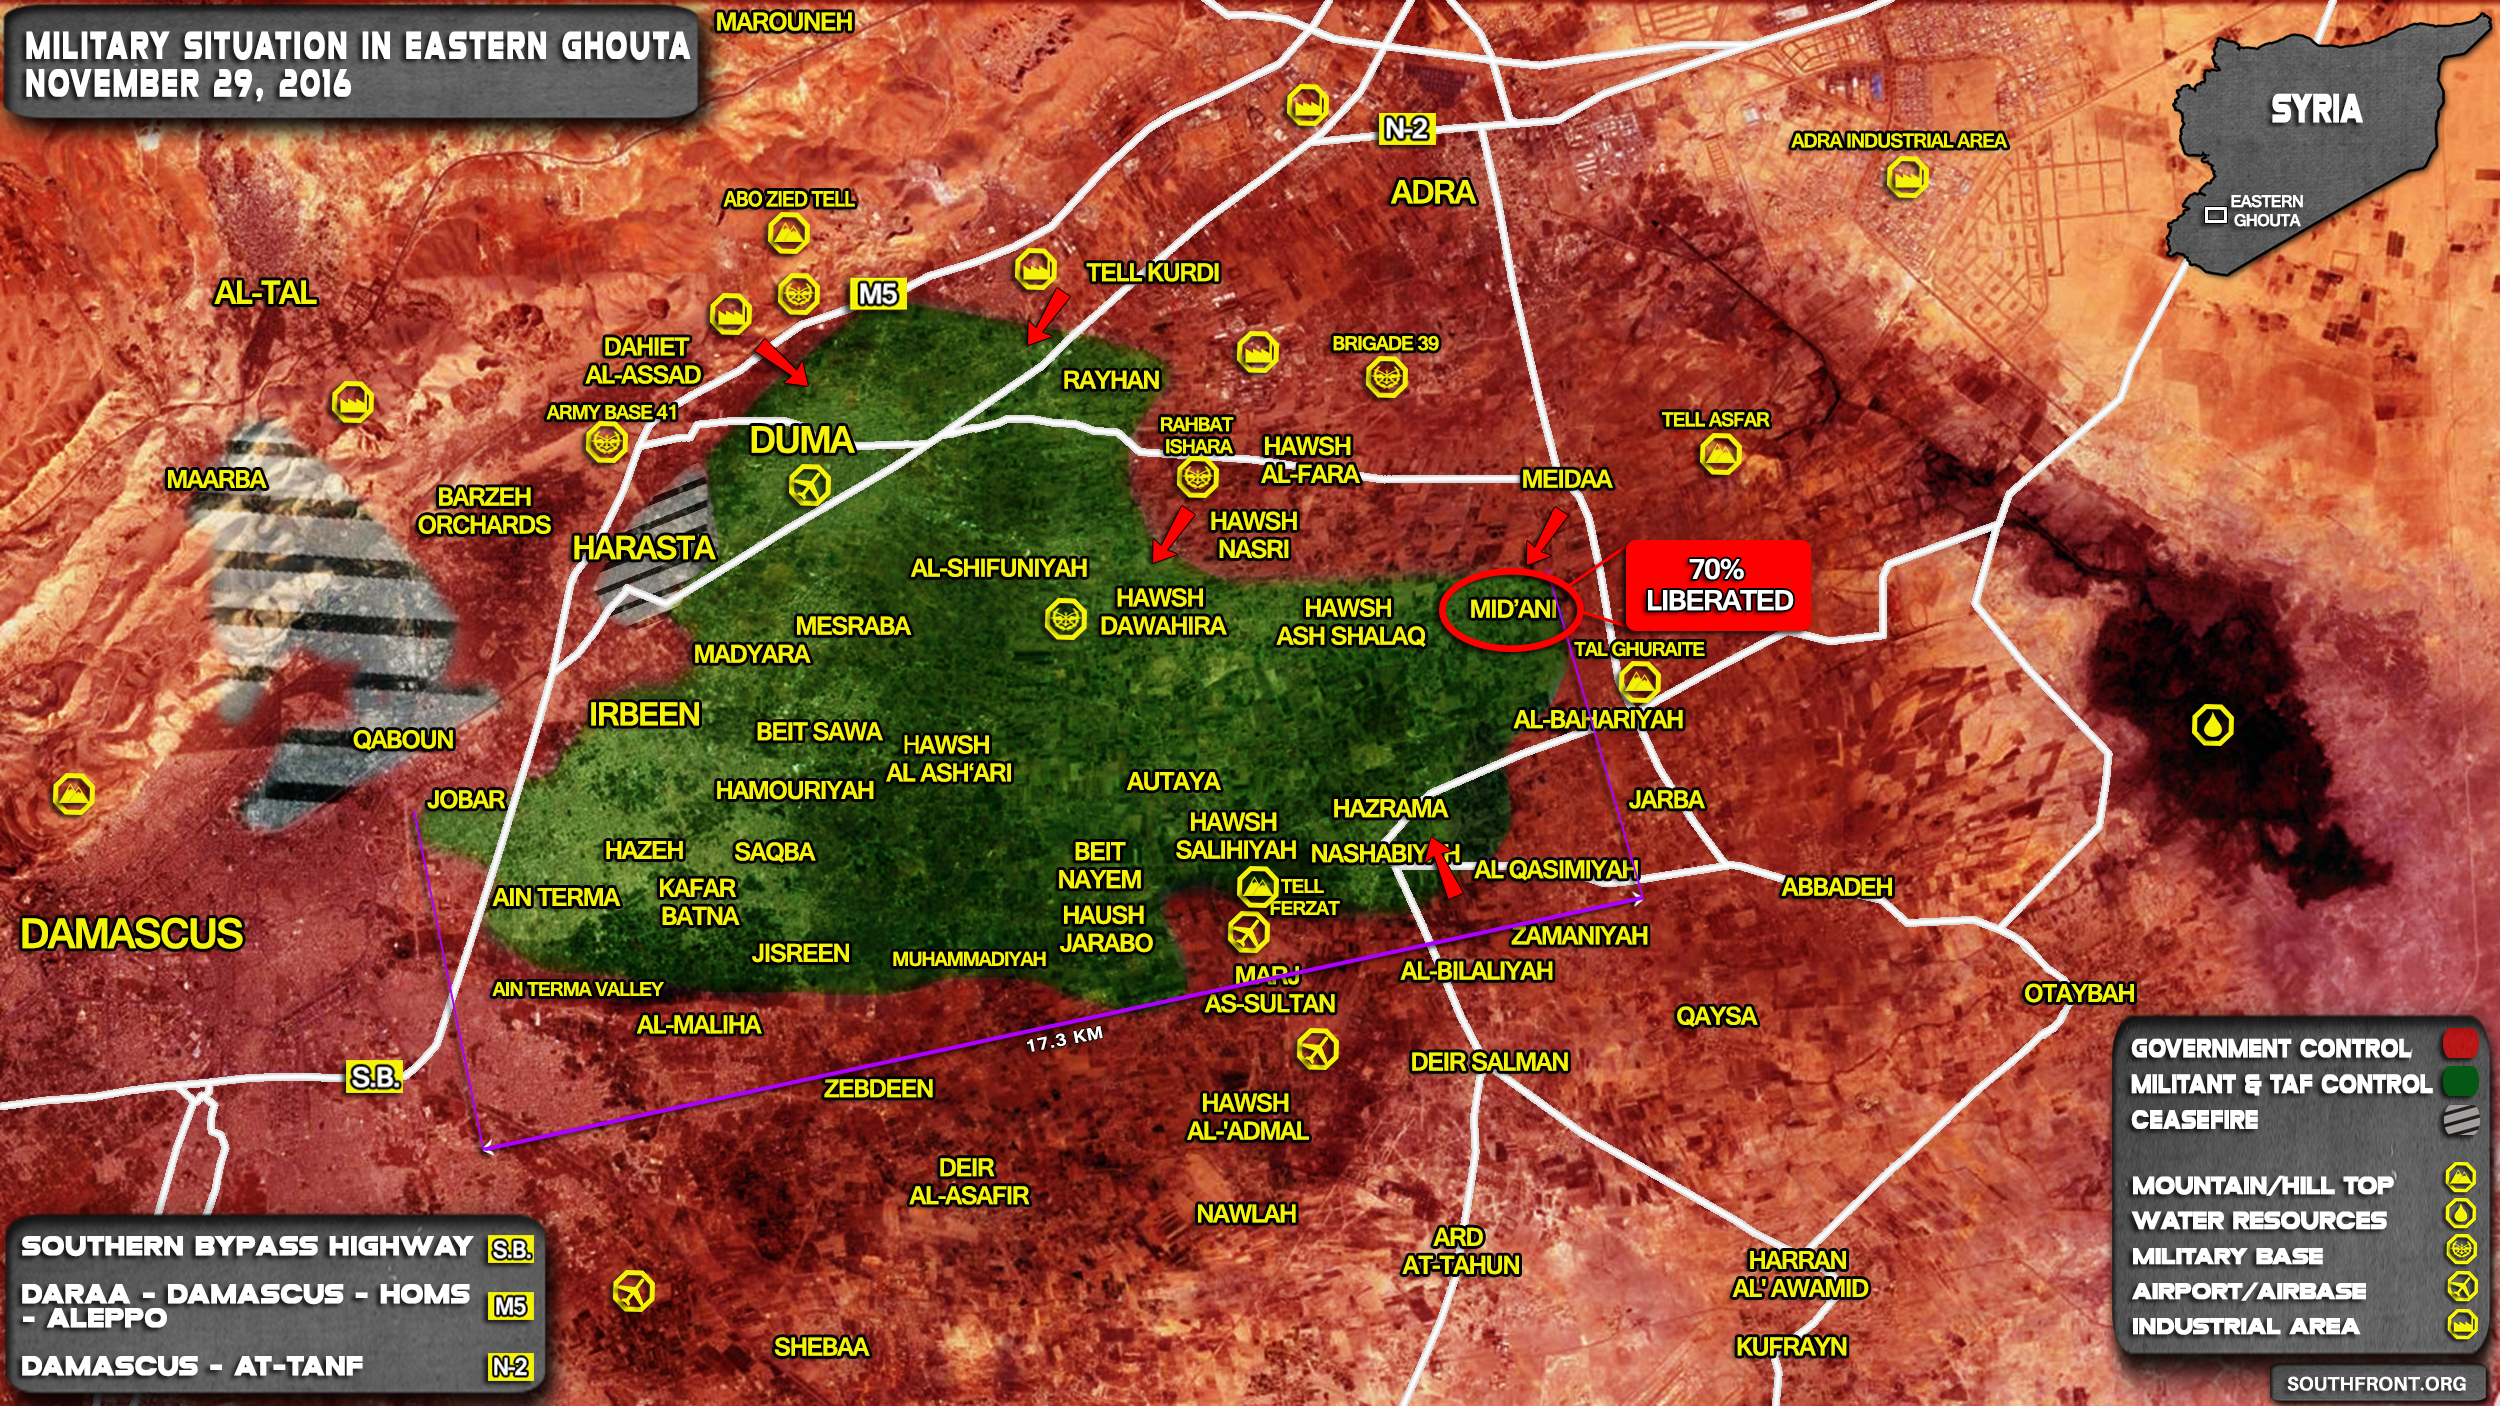 Government Forces Seize Over Half of Mid'ani Town, Prepare Major Offensive in Eastern Ghouta